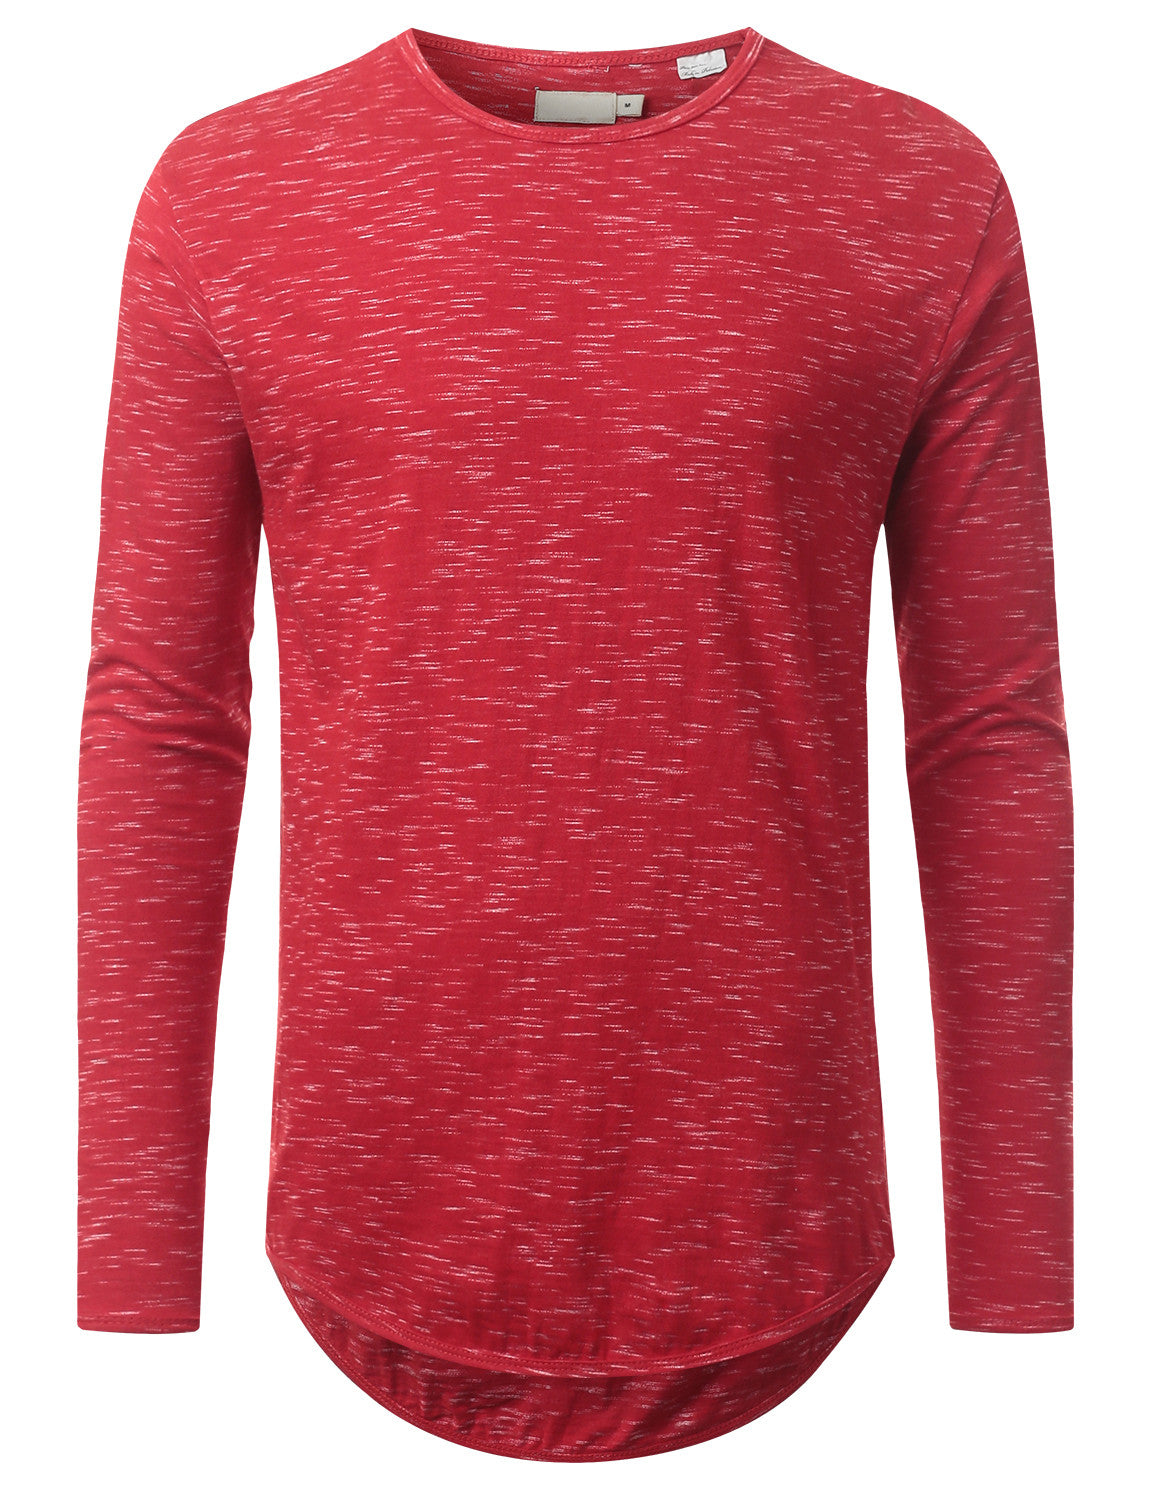 RED Textured Long Sleeve Tshirt - URBANCREWS